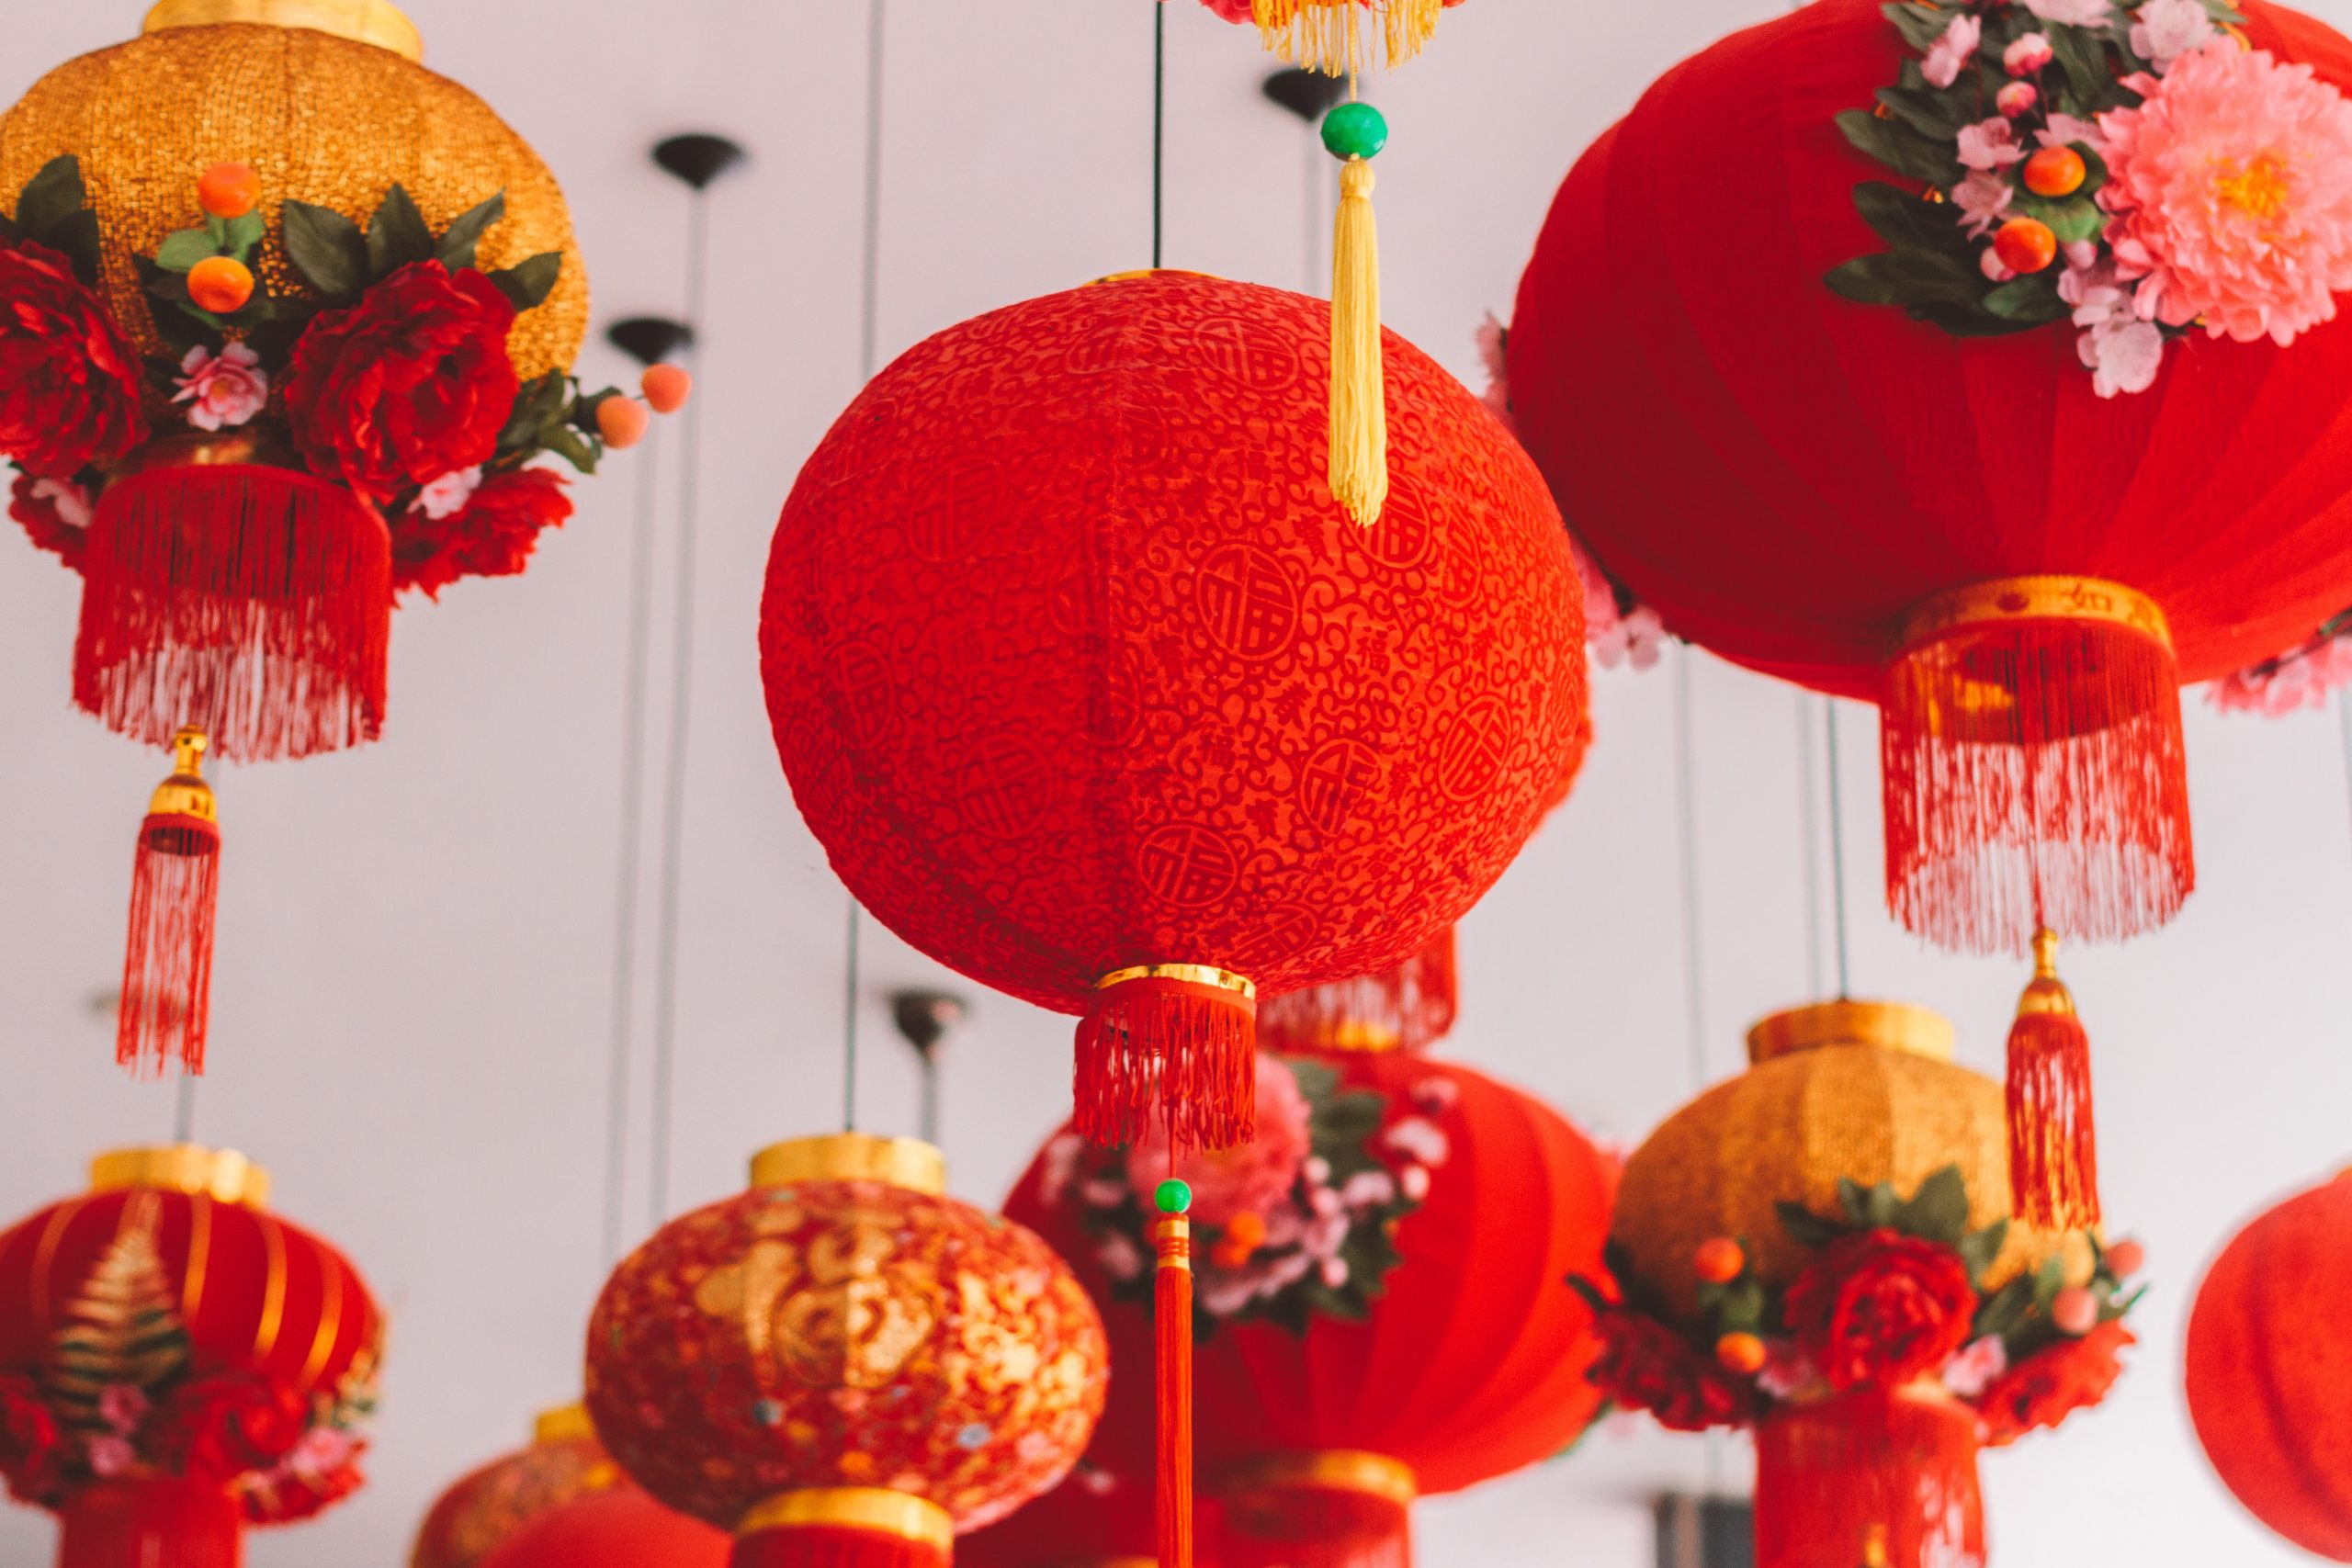 Save the Date for George Washington University's Lunar New Year Celebration on Jan. 23